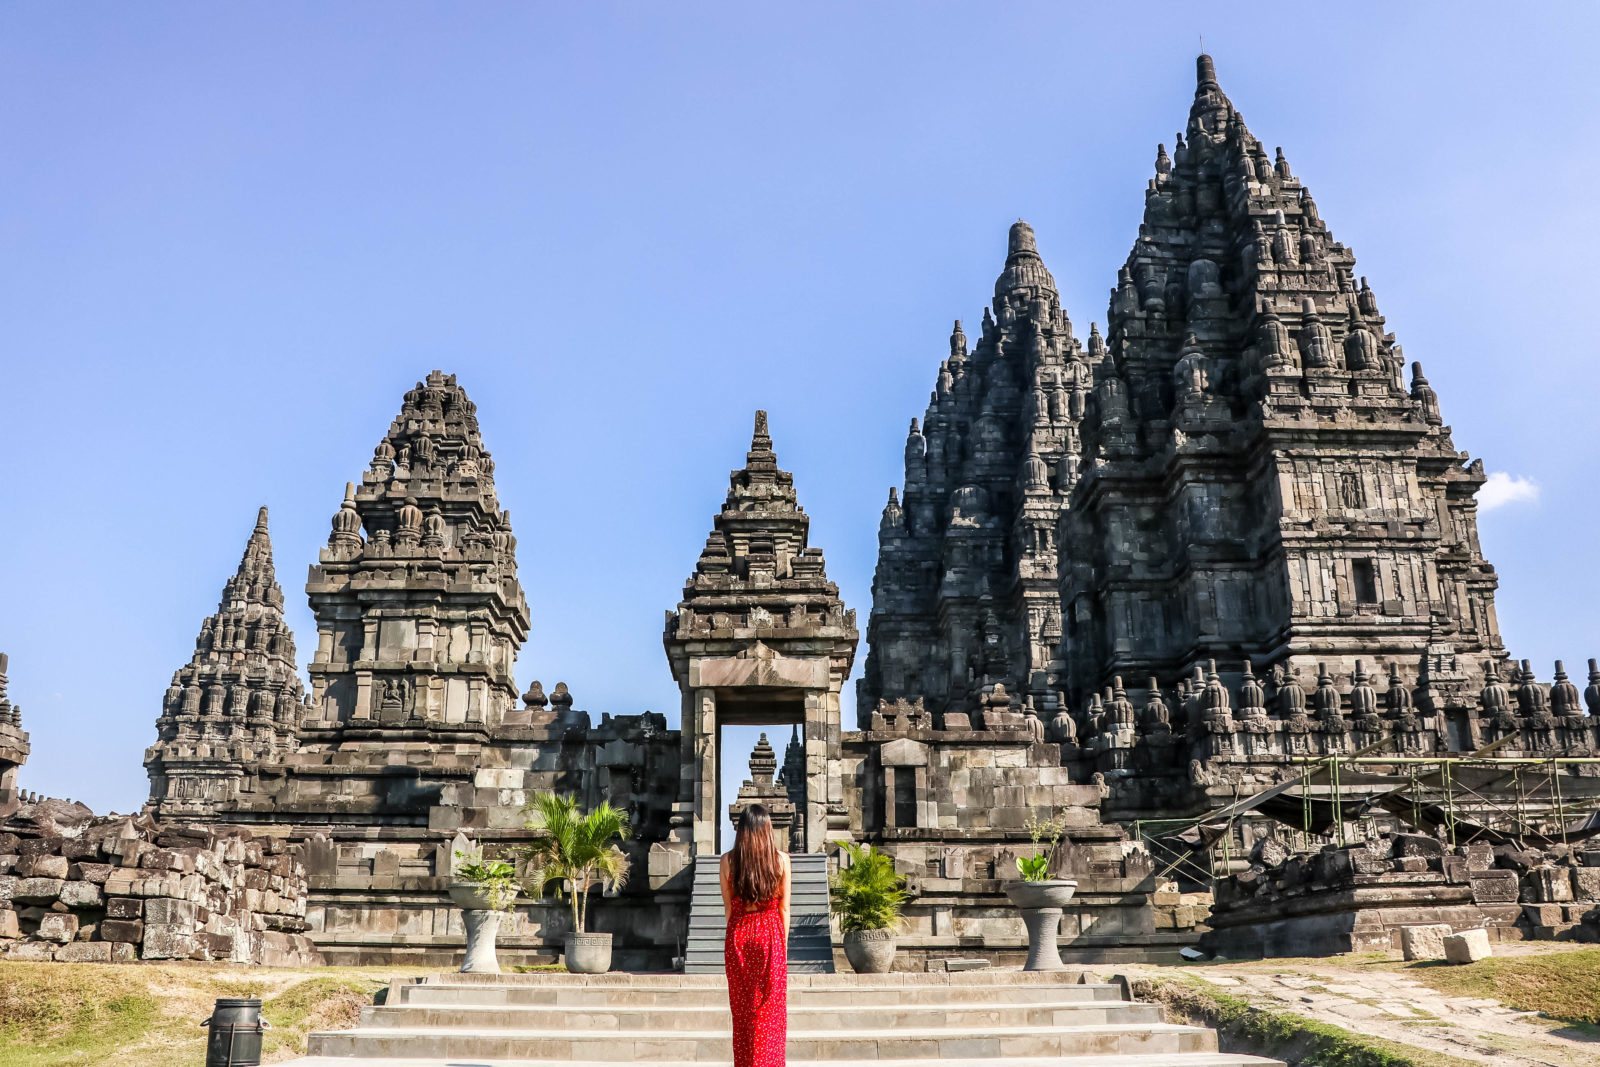 Looking for transformative travel? Keep these six stages in mind